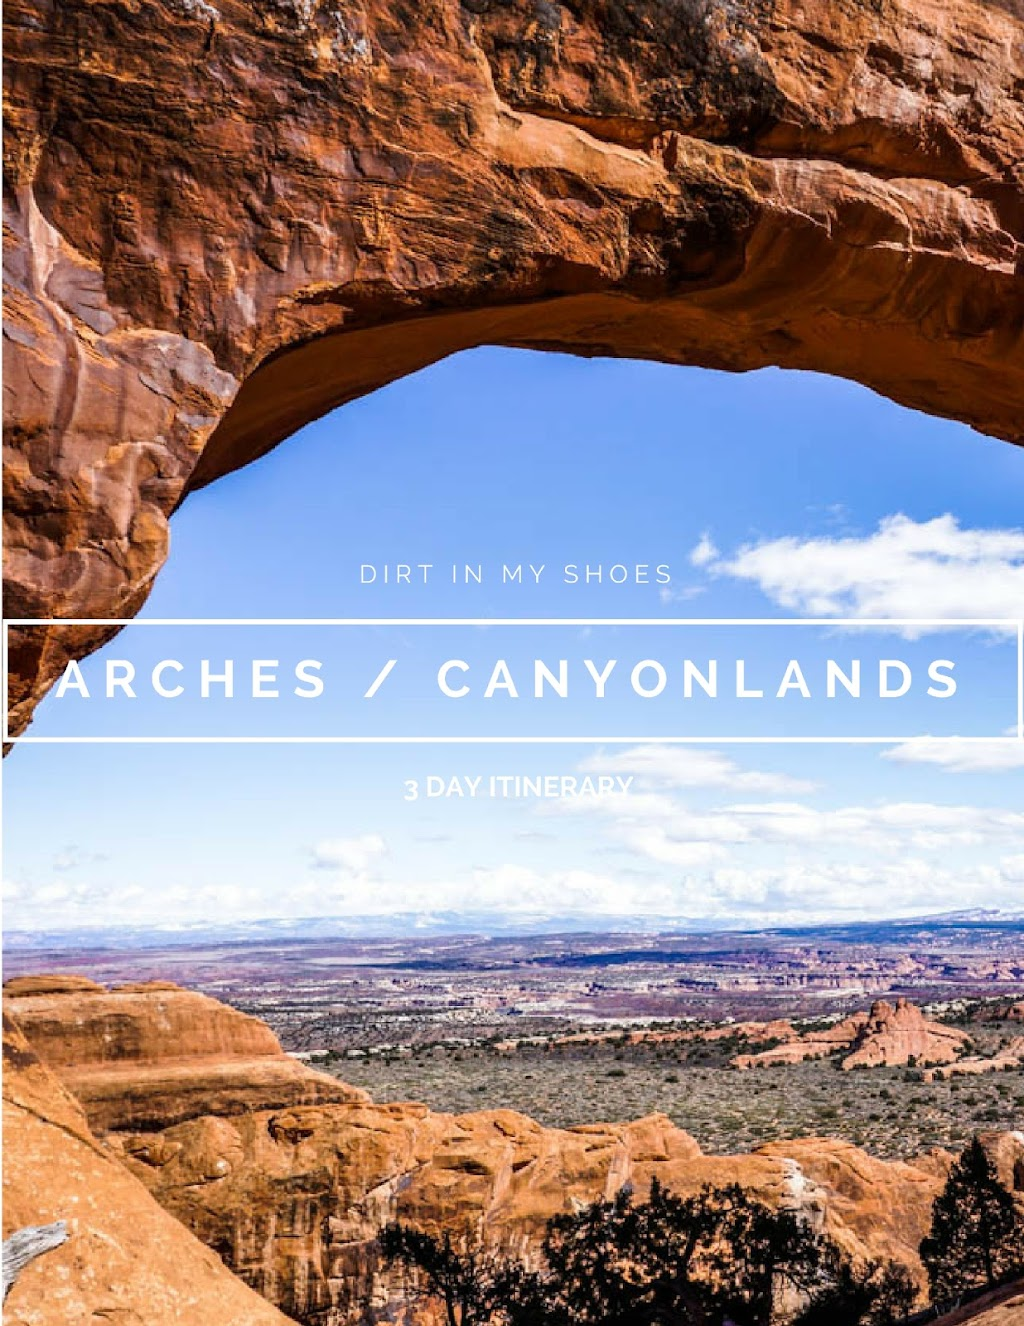 Partition Arch || Arches National Park Itinerary || Dirt In My Shoes